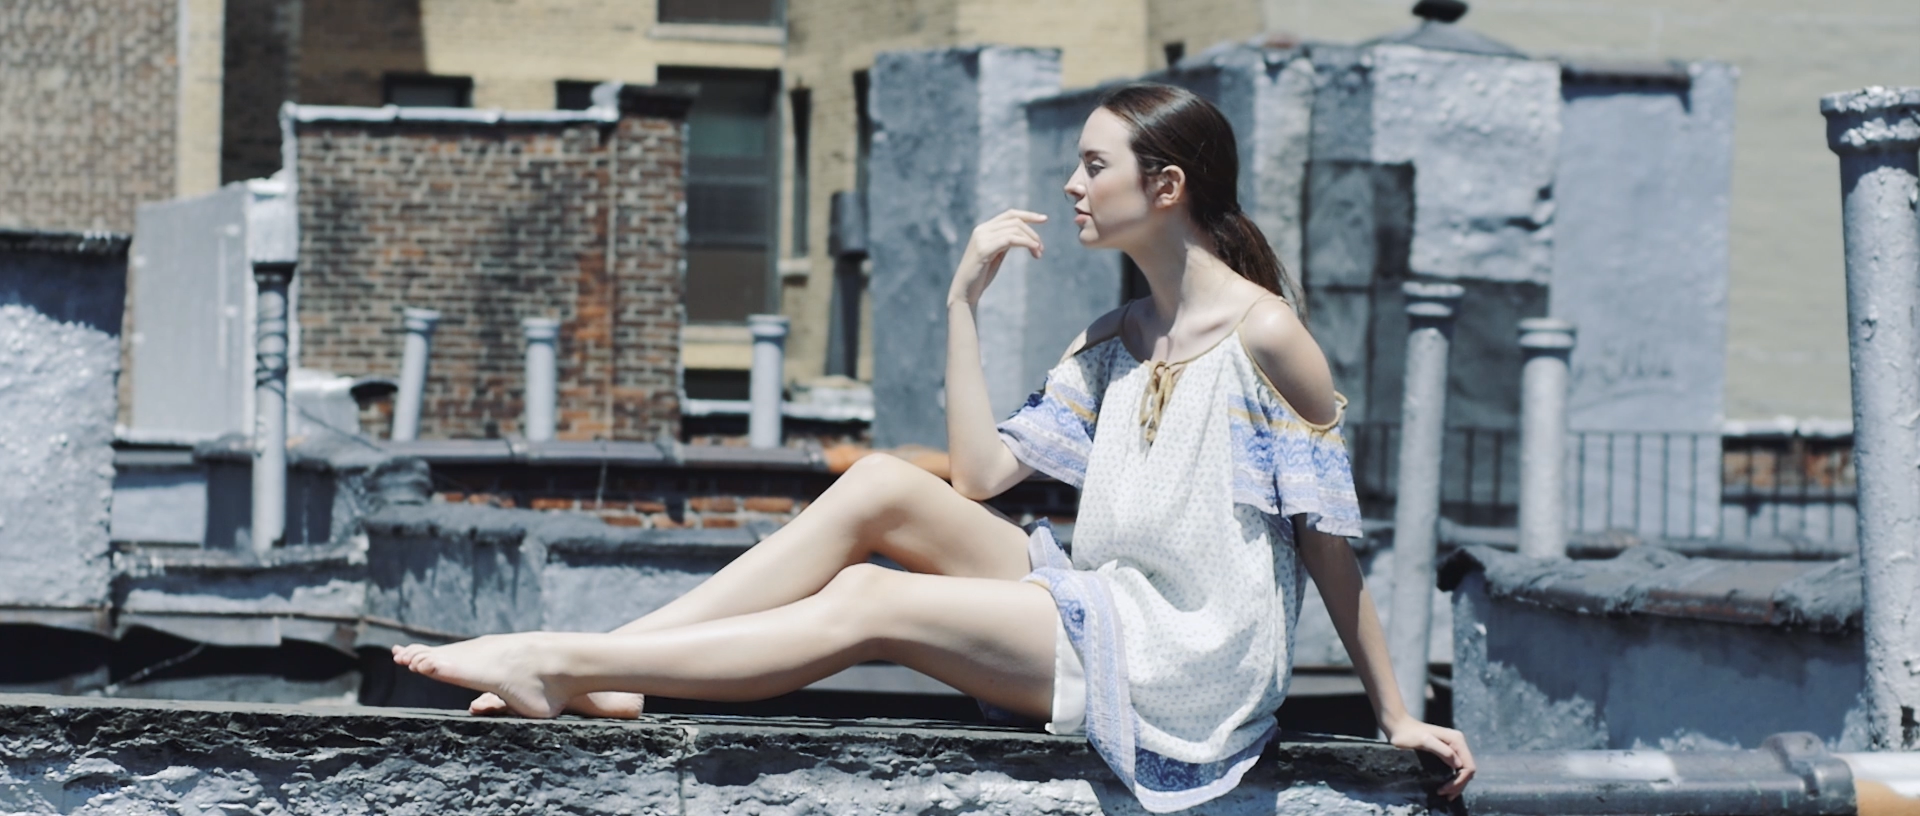 Fashion film with model Kalyn in NY summer 2016 shot by FX Boucherak philocalie films